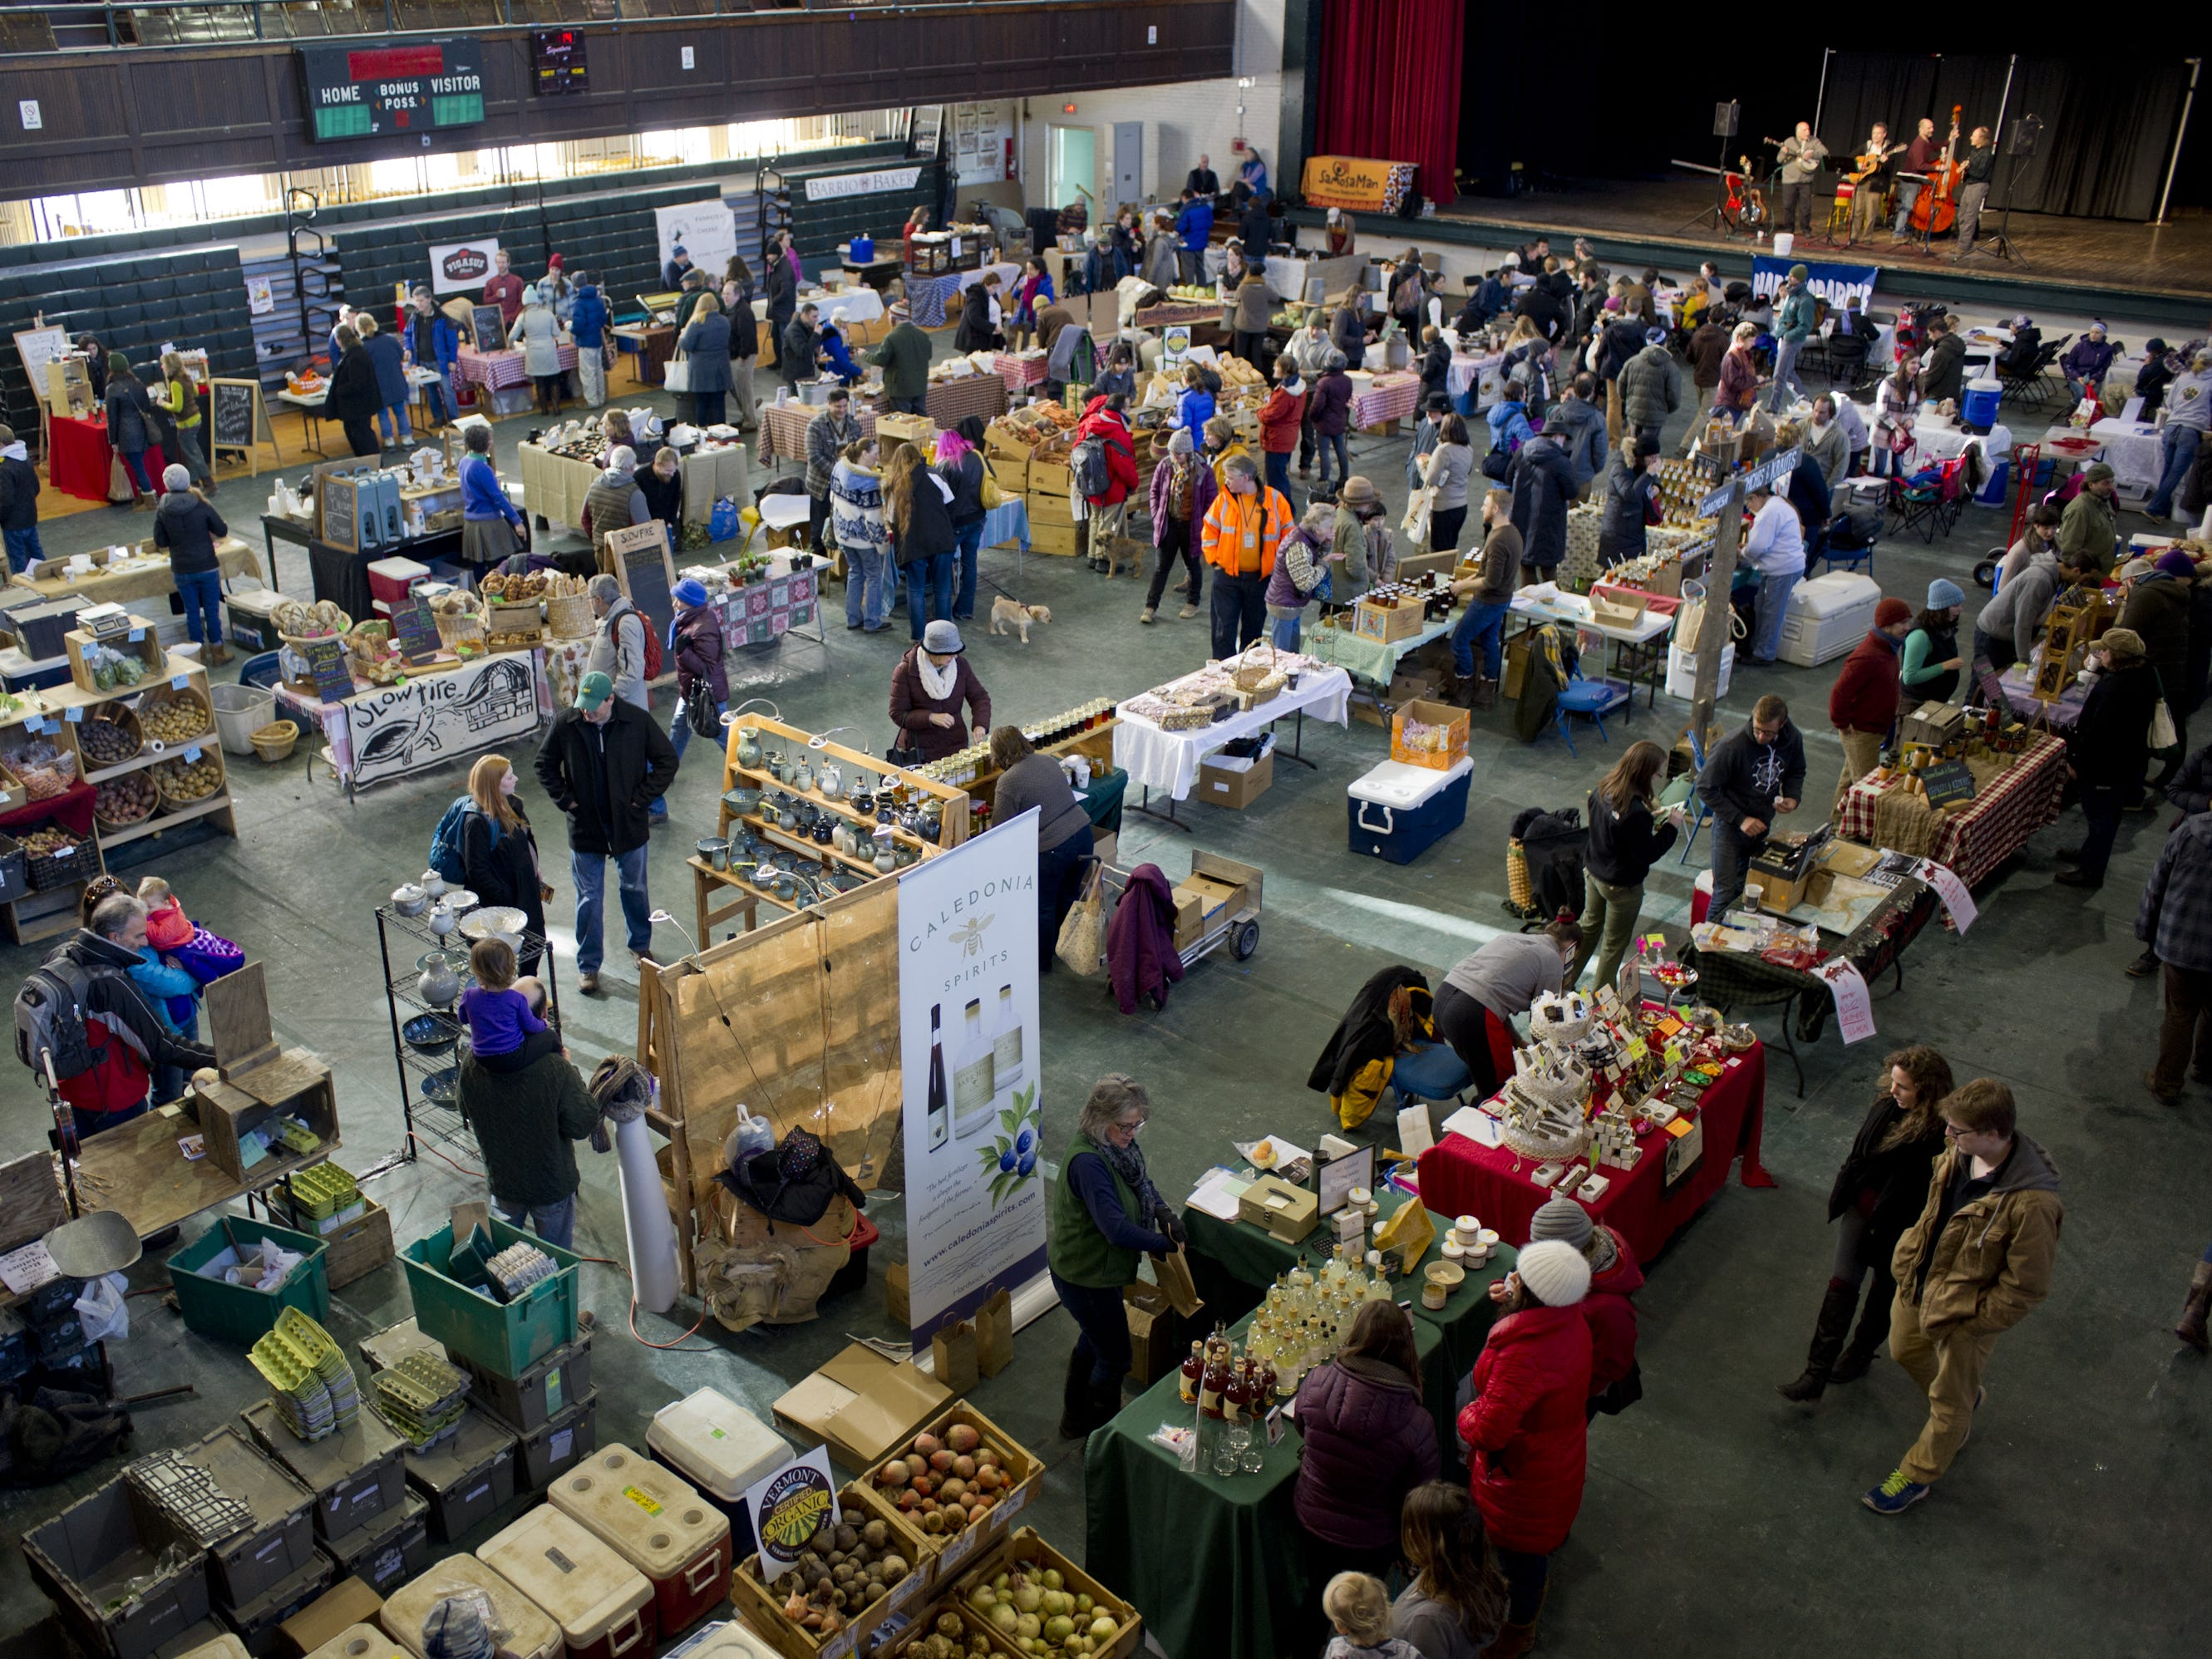 Vendors, customers and performers attend the Winter Farmers Market at Memorial Auditorium in Burlington. on Saturday, January 17, 2015.